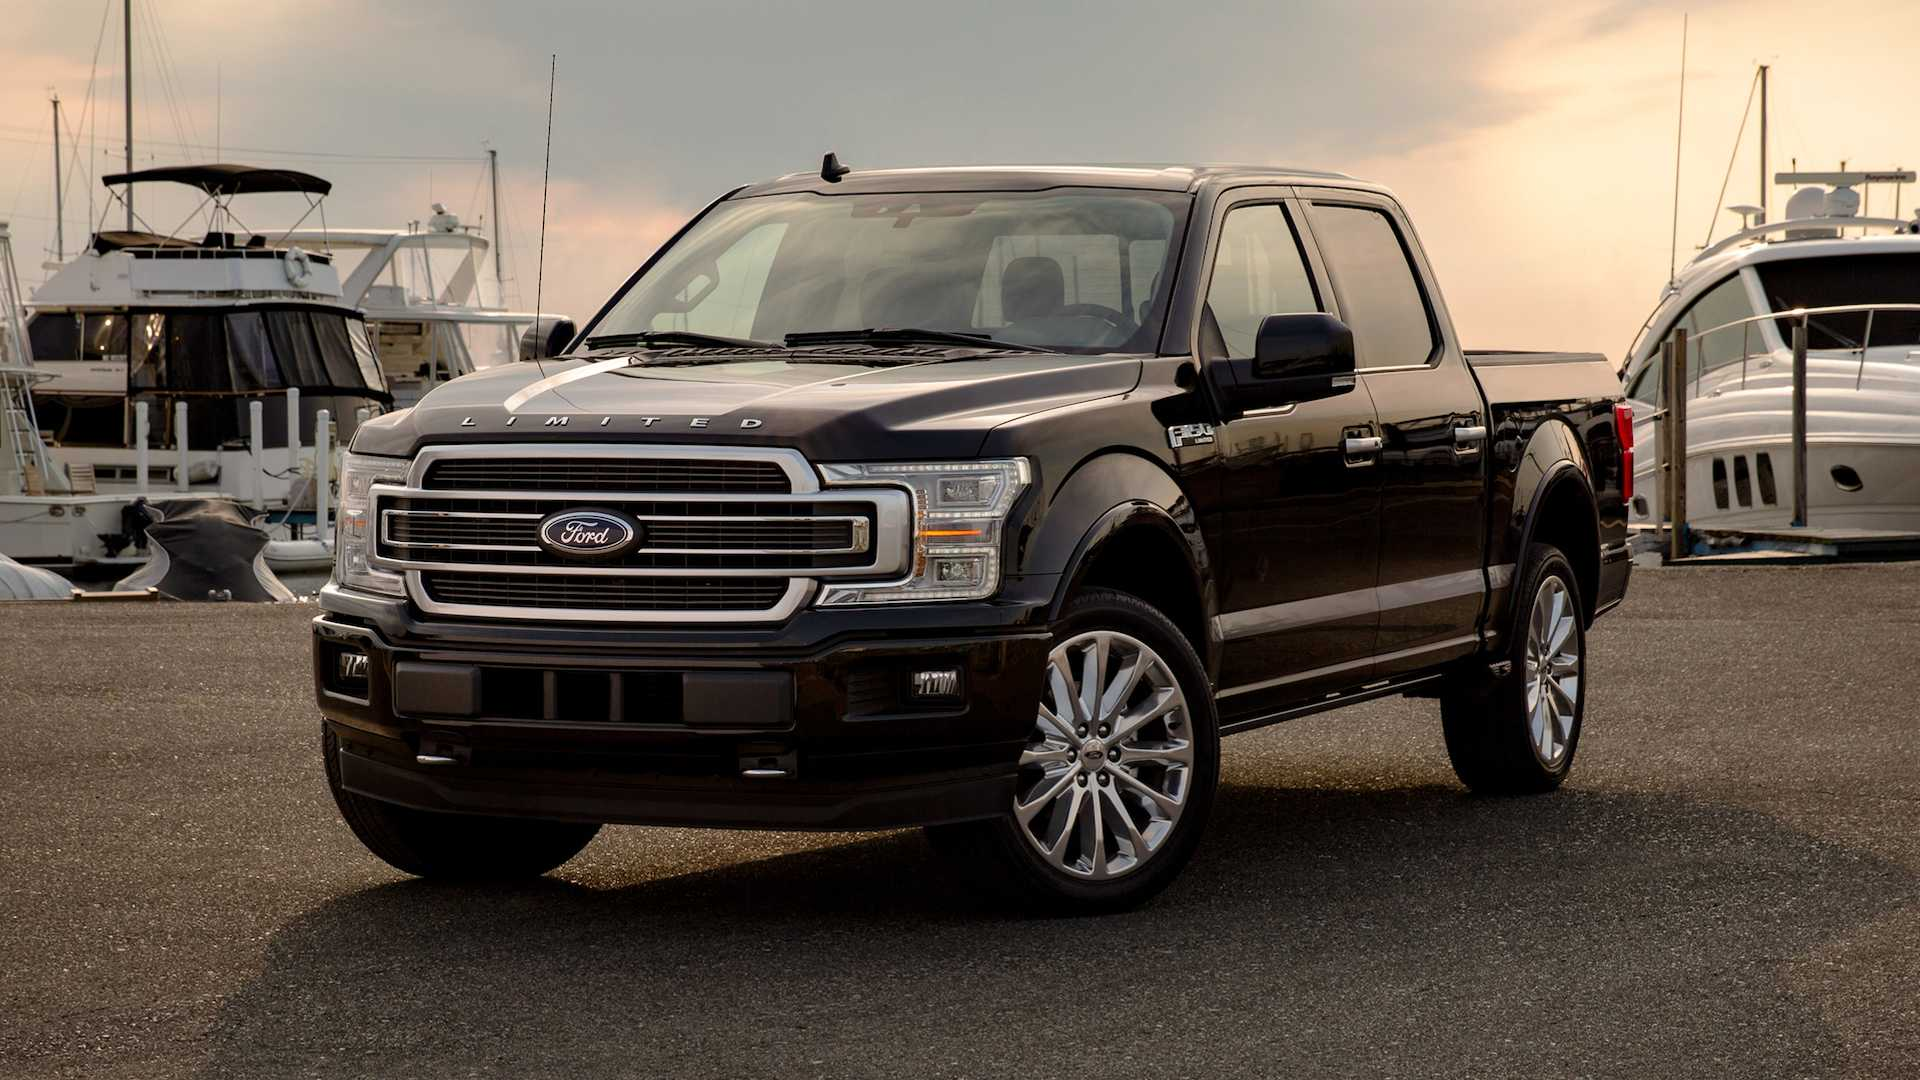 91 New 2019 Ford F100 Price Design And Review